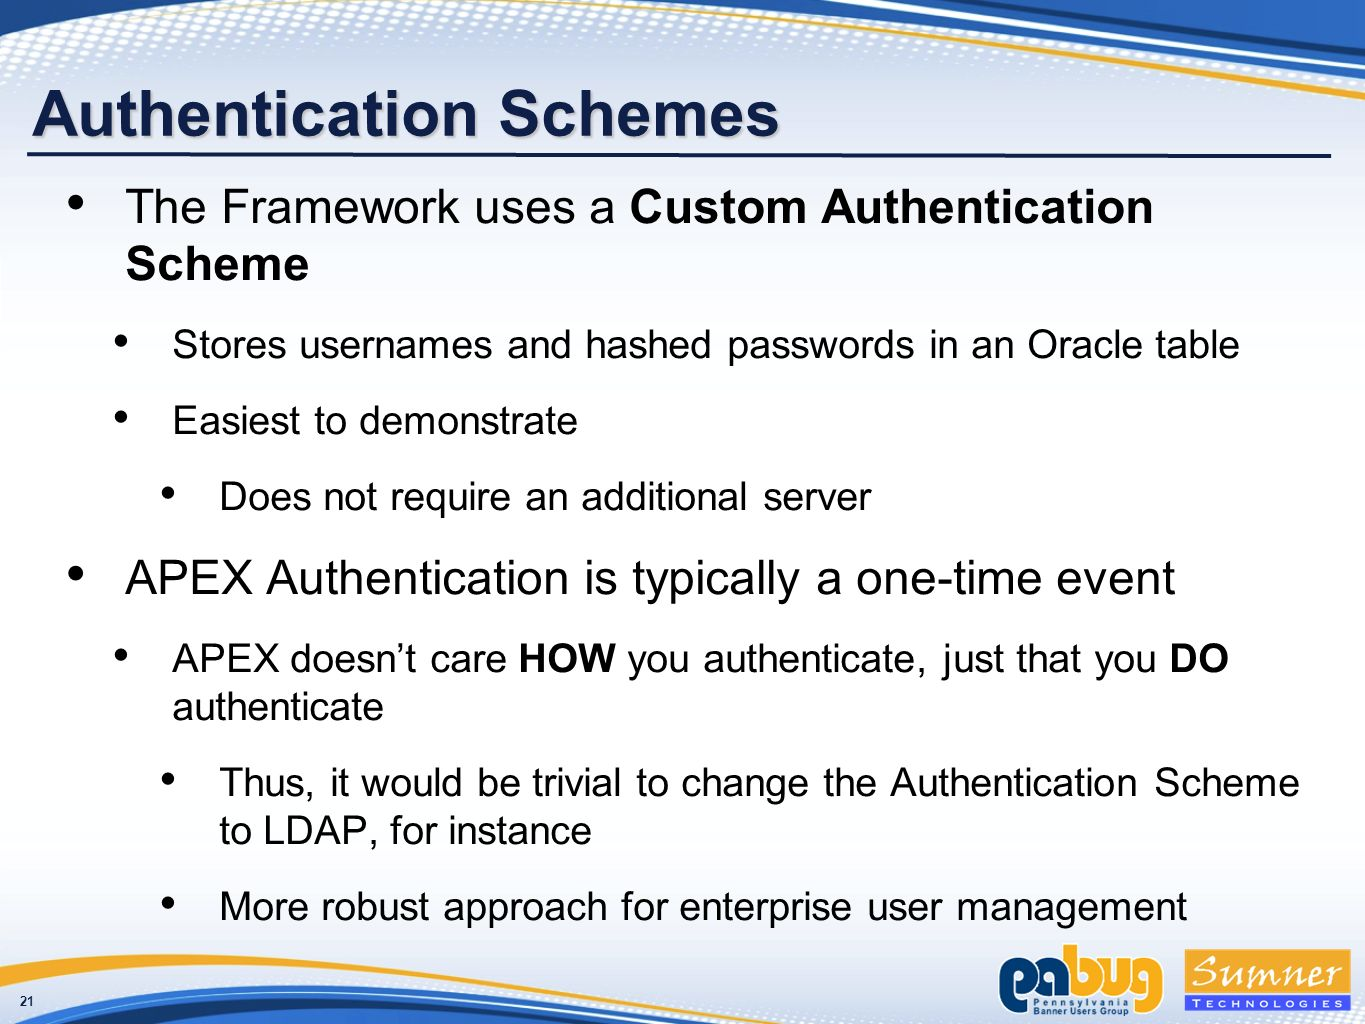 21 Authentication Schemes The Framework uses a Custom Authentication Scheme Stores usernames and hashed passwords in an Oracle table Easiest to demonstrate Does not require an additional server APEX Authentication is typically a one-time event APEX doesnt care HOW you authenticate, just that you DO authenticate Thus, it would be trivial to change the Authentication Scheme to LDAP, for instance More robust approach for enterprise user management